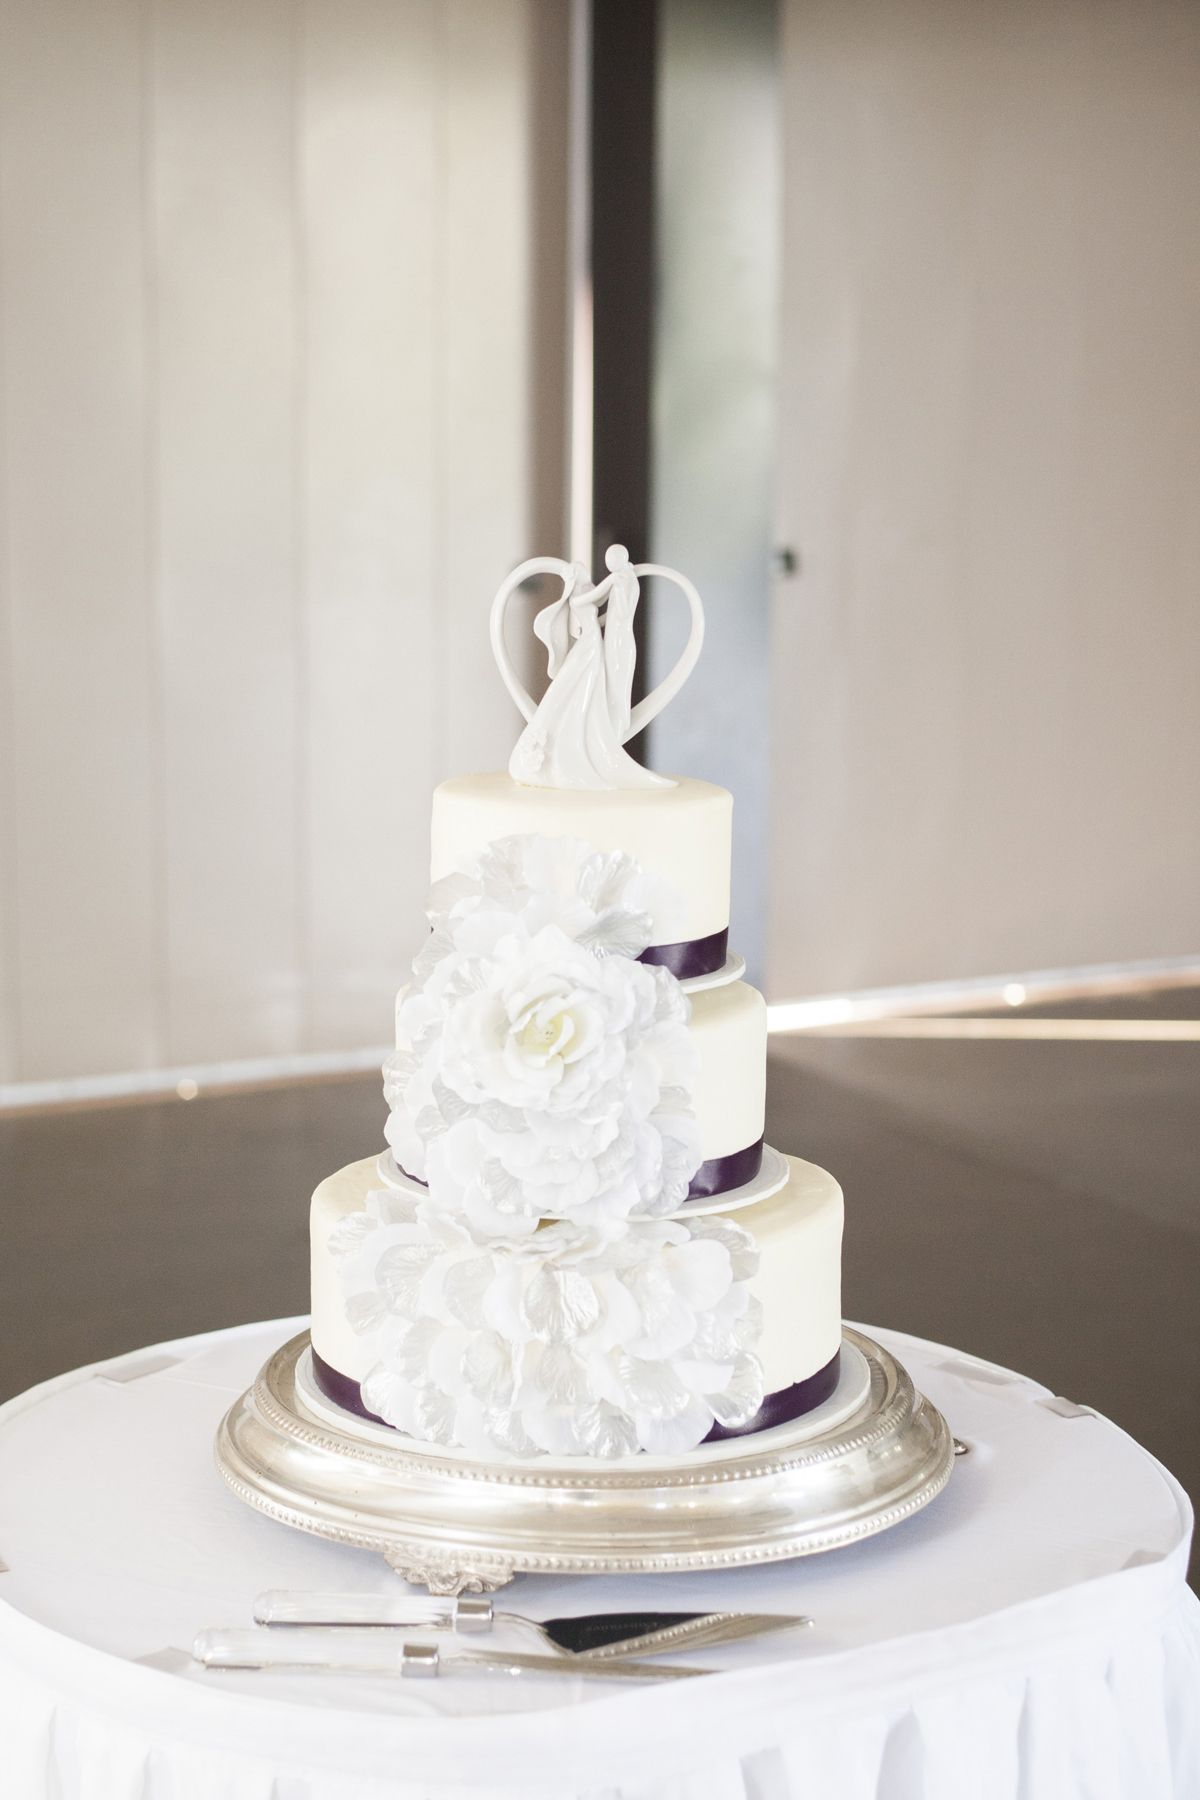 This cake is too pretty! Photo by Angeli. #MNWeddingPhotographer #WeddingCakes